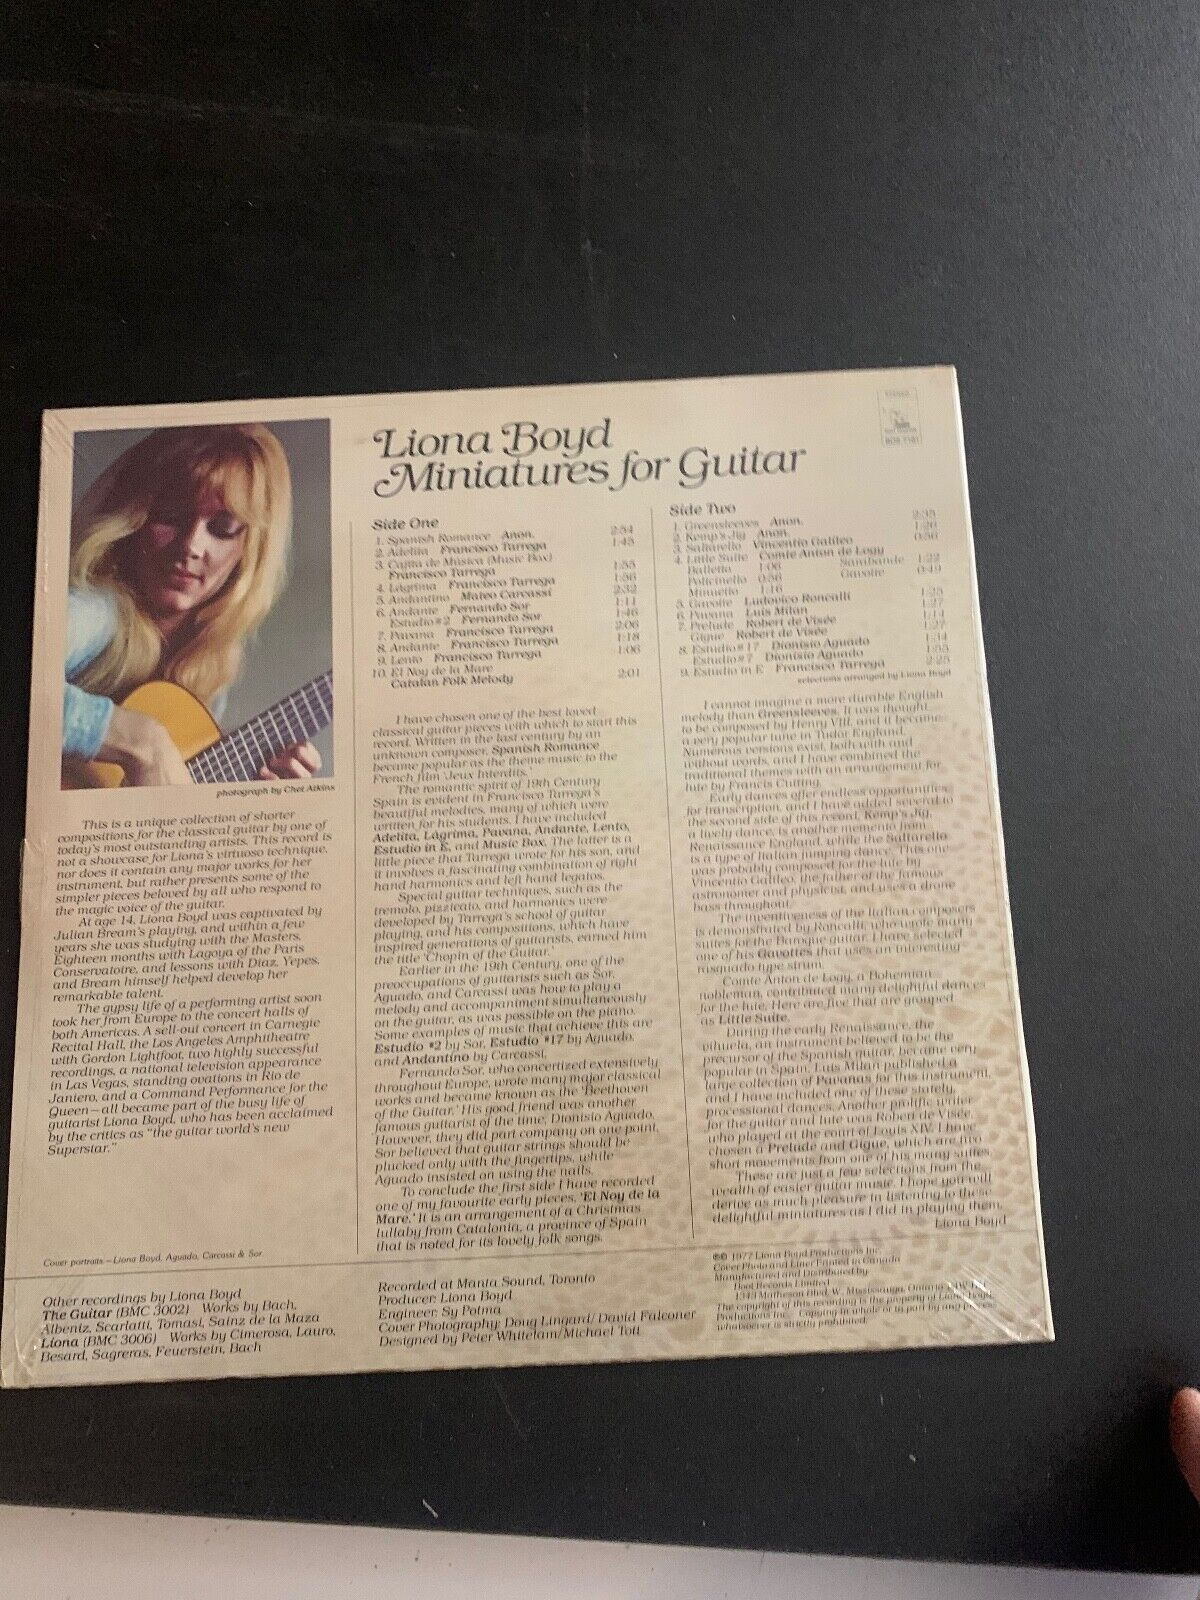 LP RECORD - NEW - LIONA BOYD - MINIATURES FOR GUITAR  - $9.99